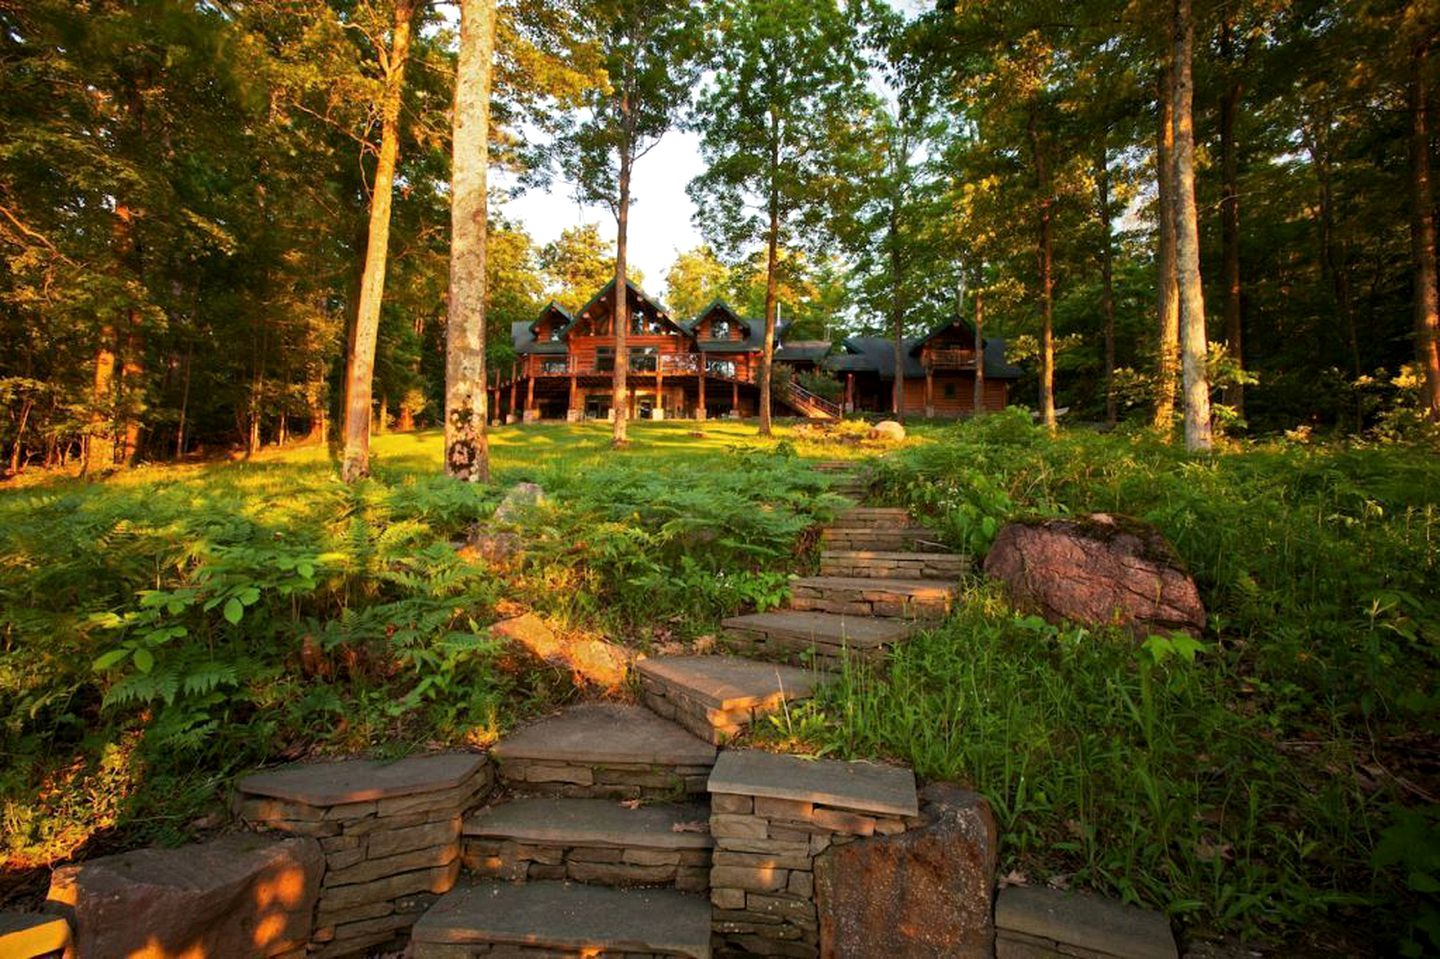 Log Cabins (Cooperstown, New York, United States)